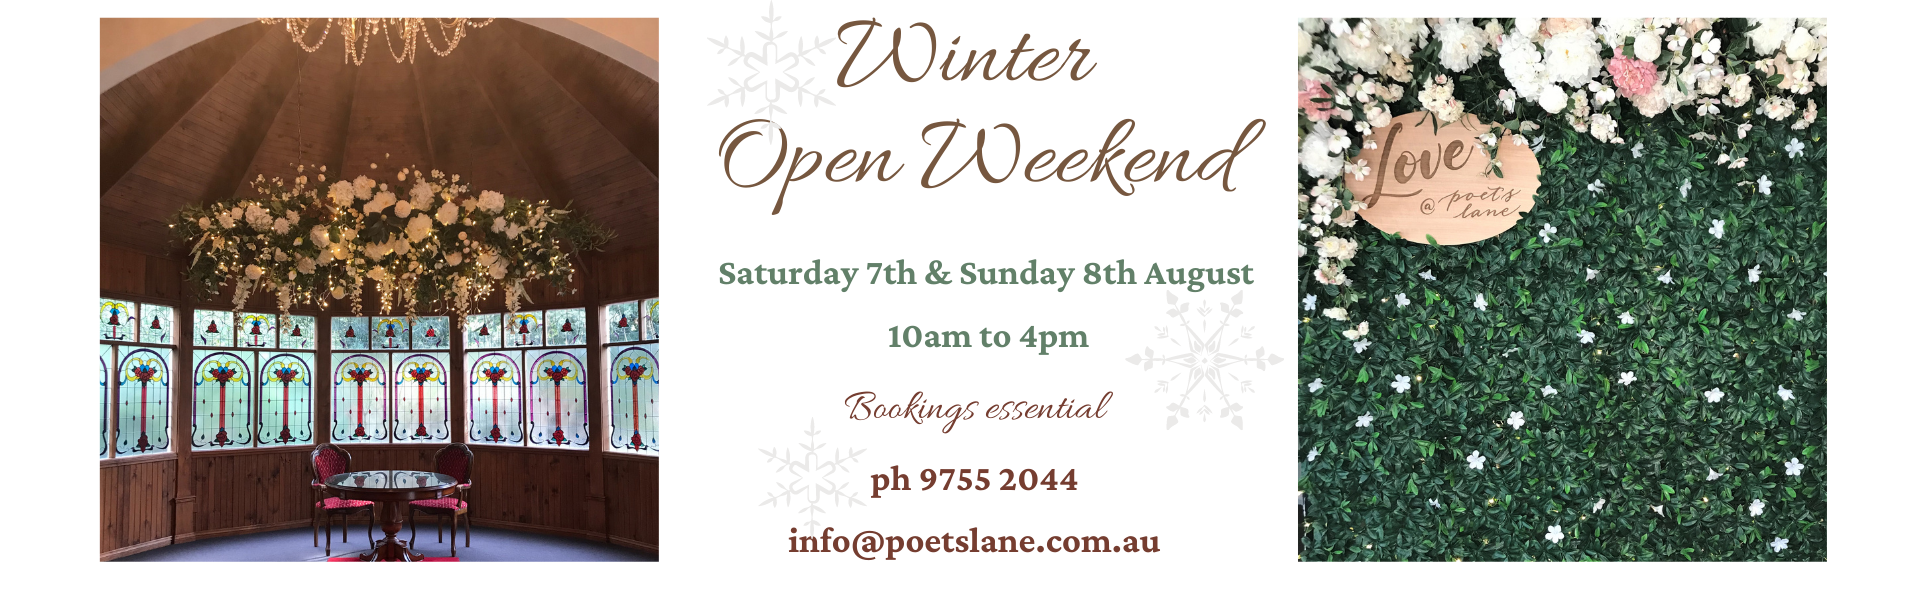 Open weekend 7th & 8th August banner